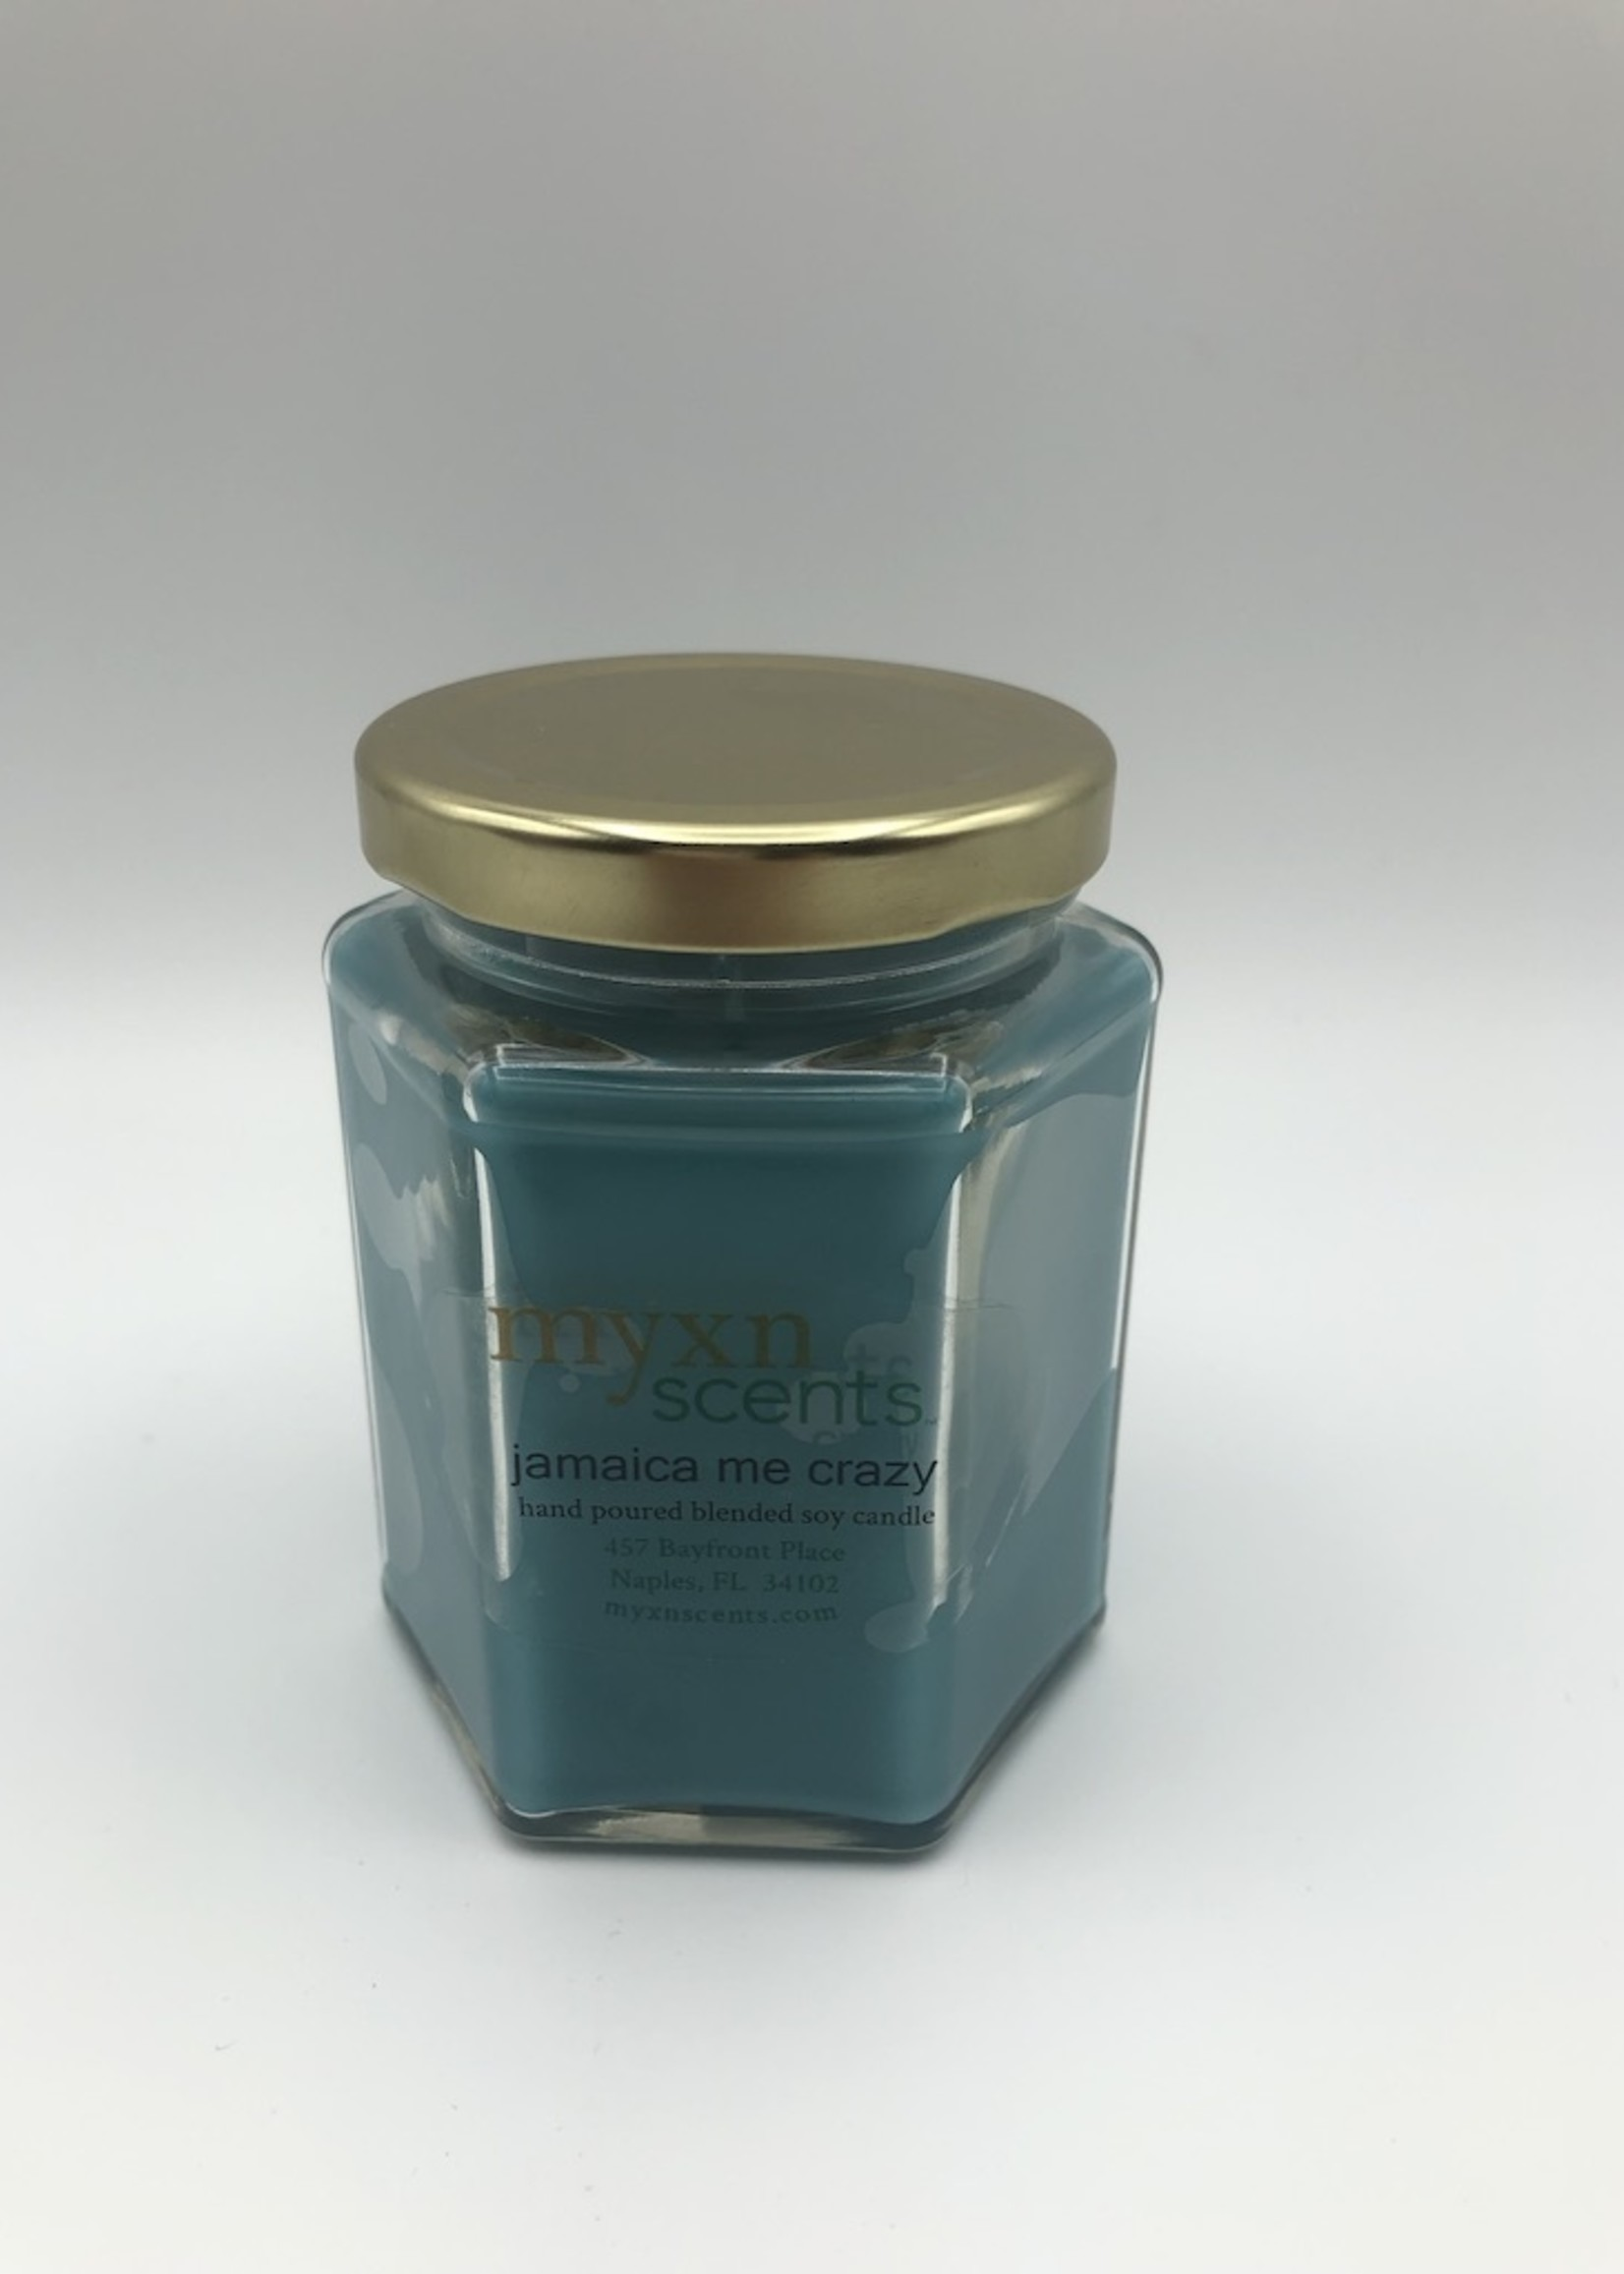 Just Makes Scents Hand Poured Candle Jamaica Me Crazy